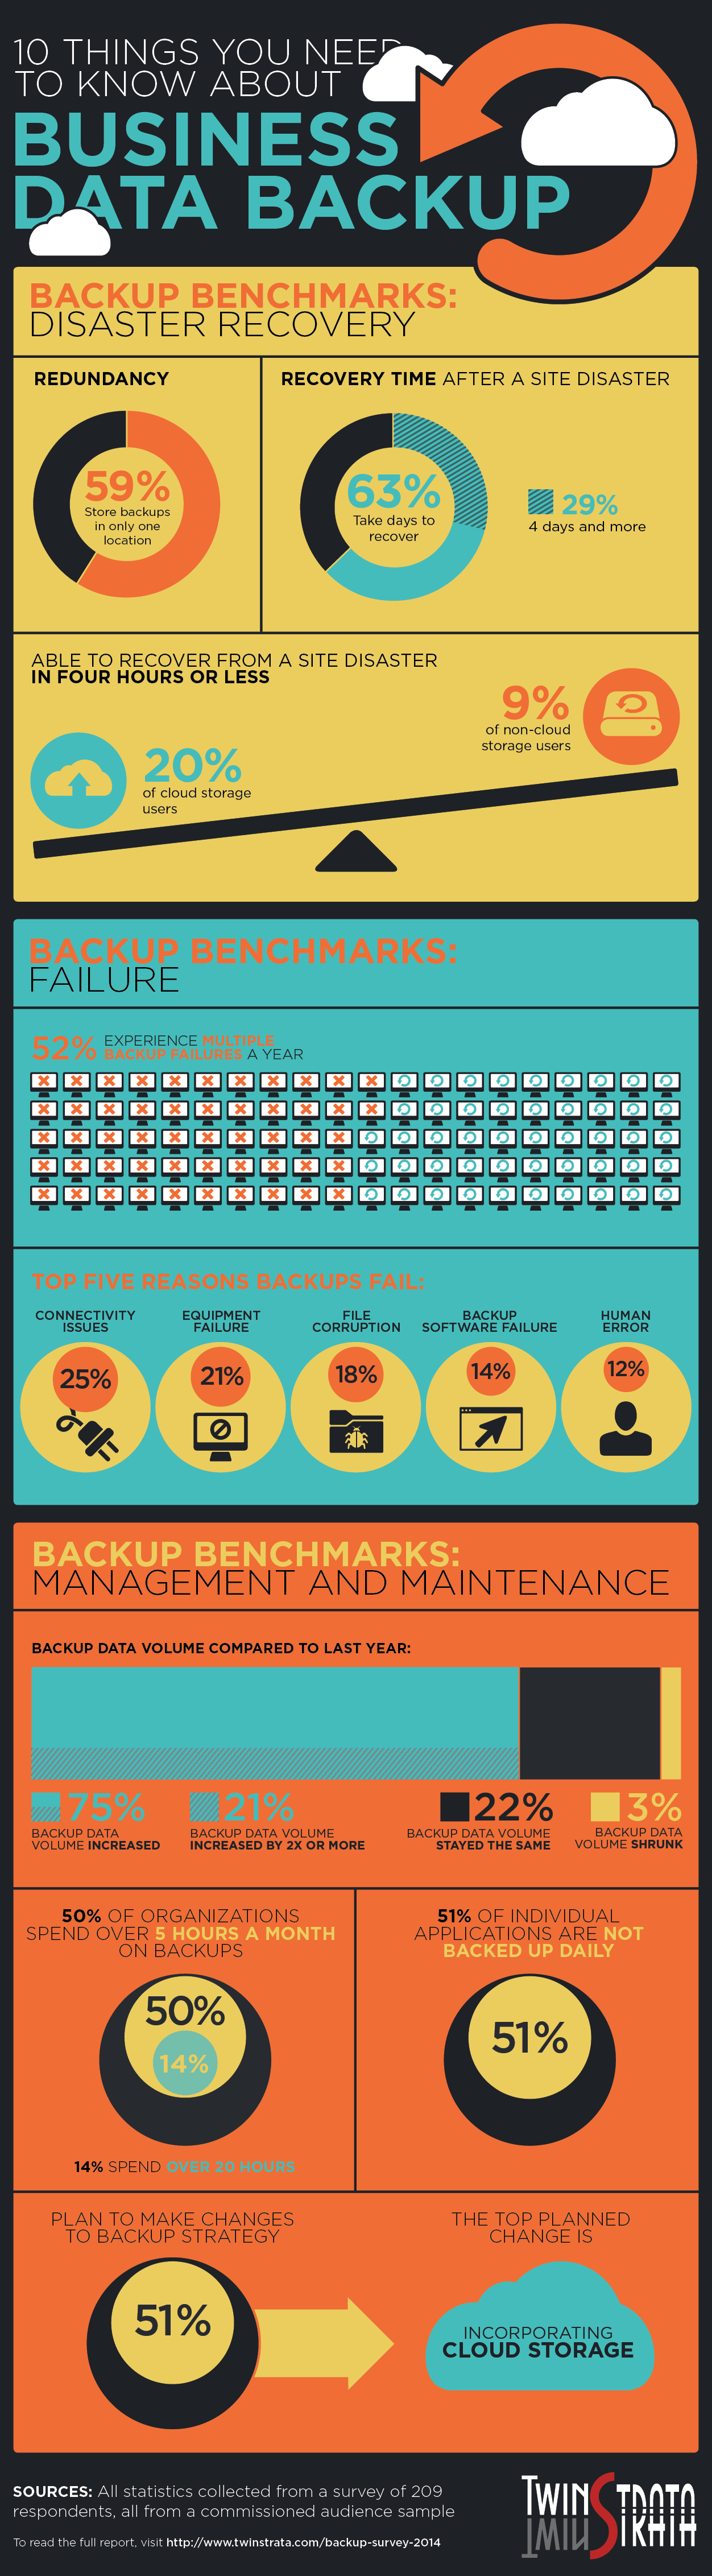 10 Things You Need To Know About Business Data Backup [Infographic]